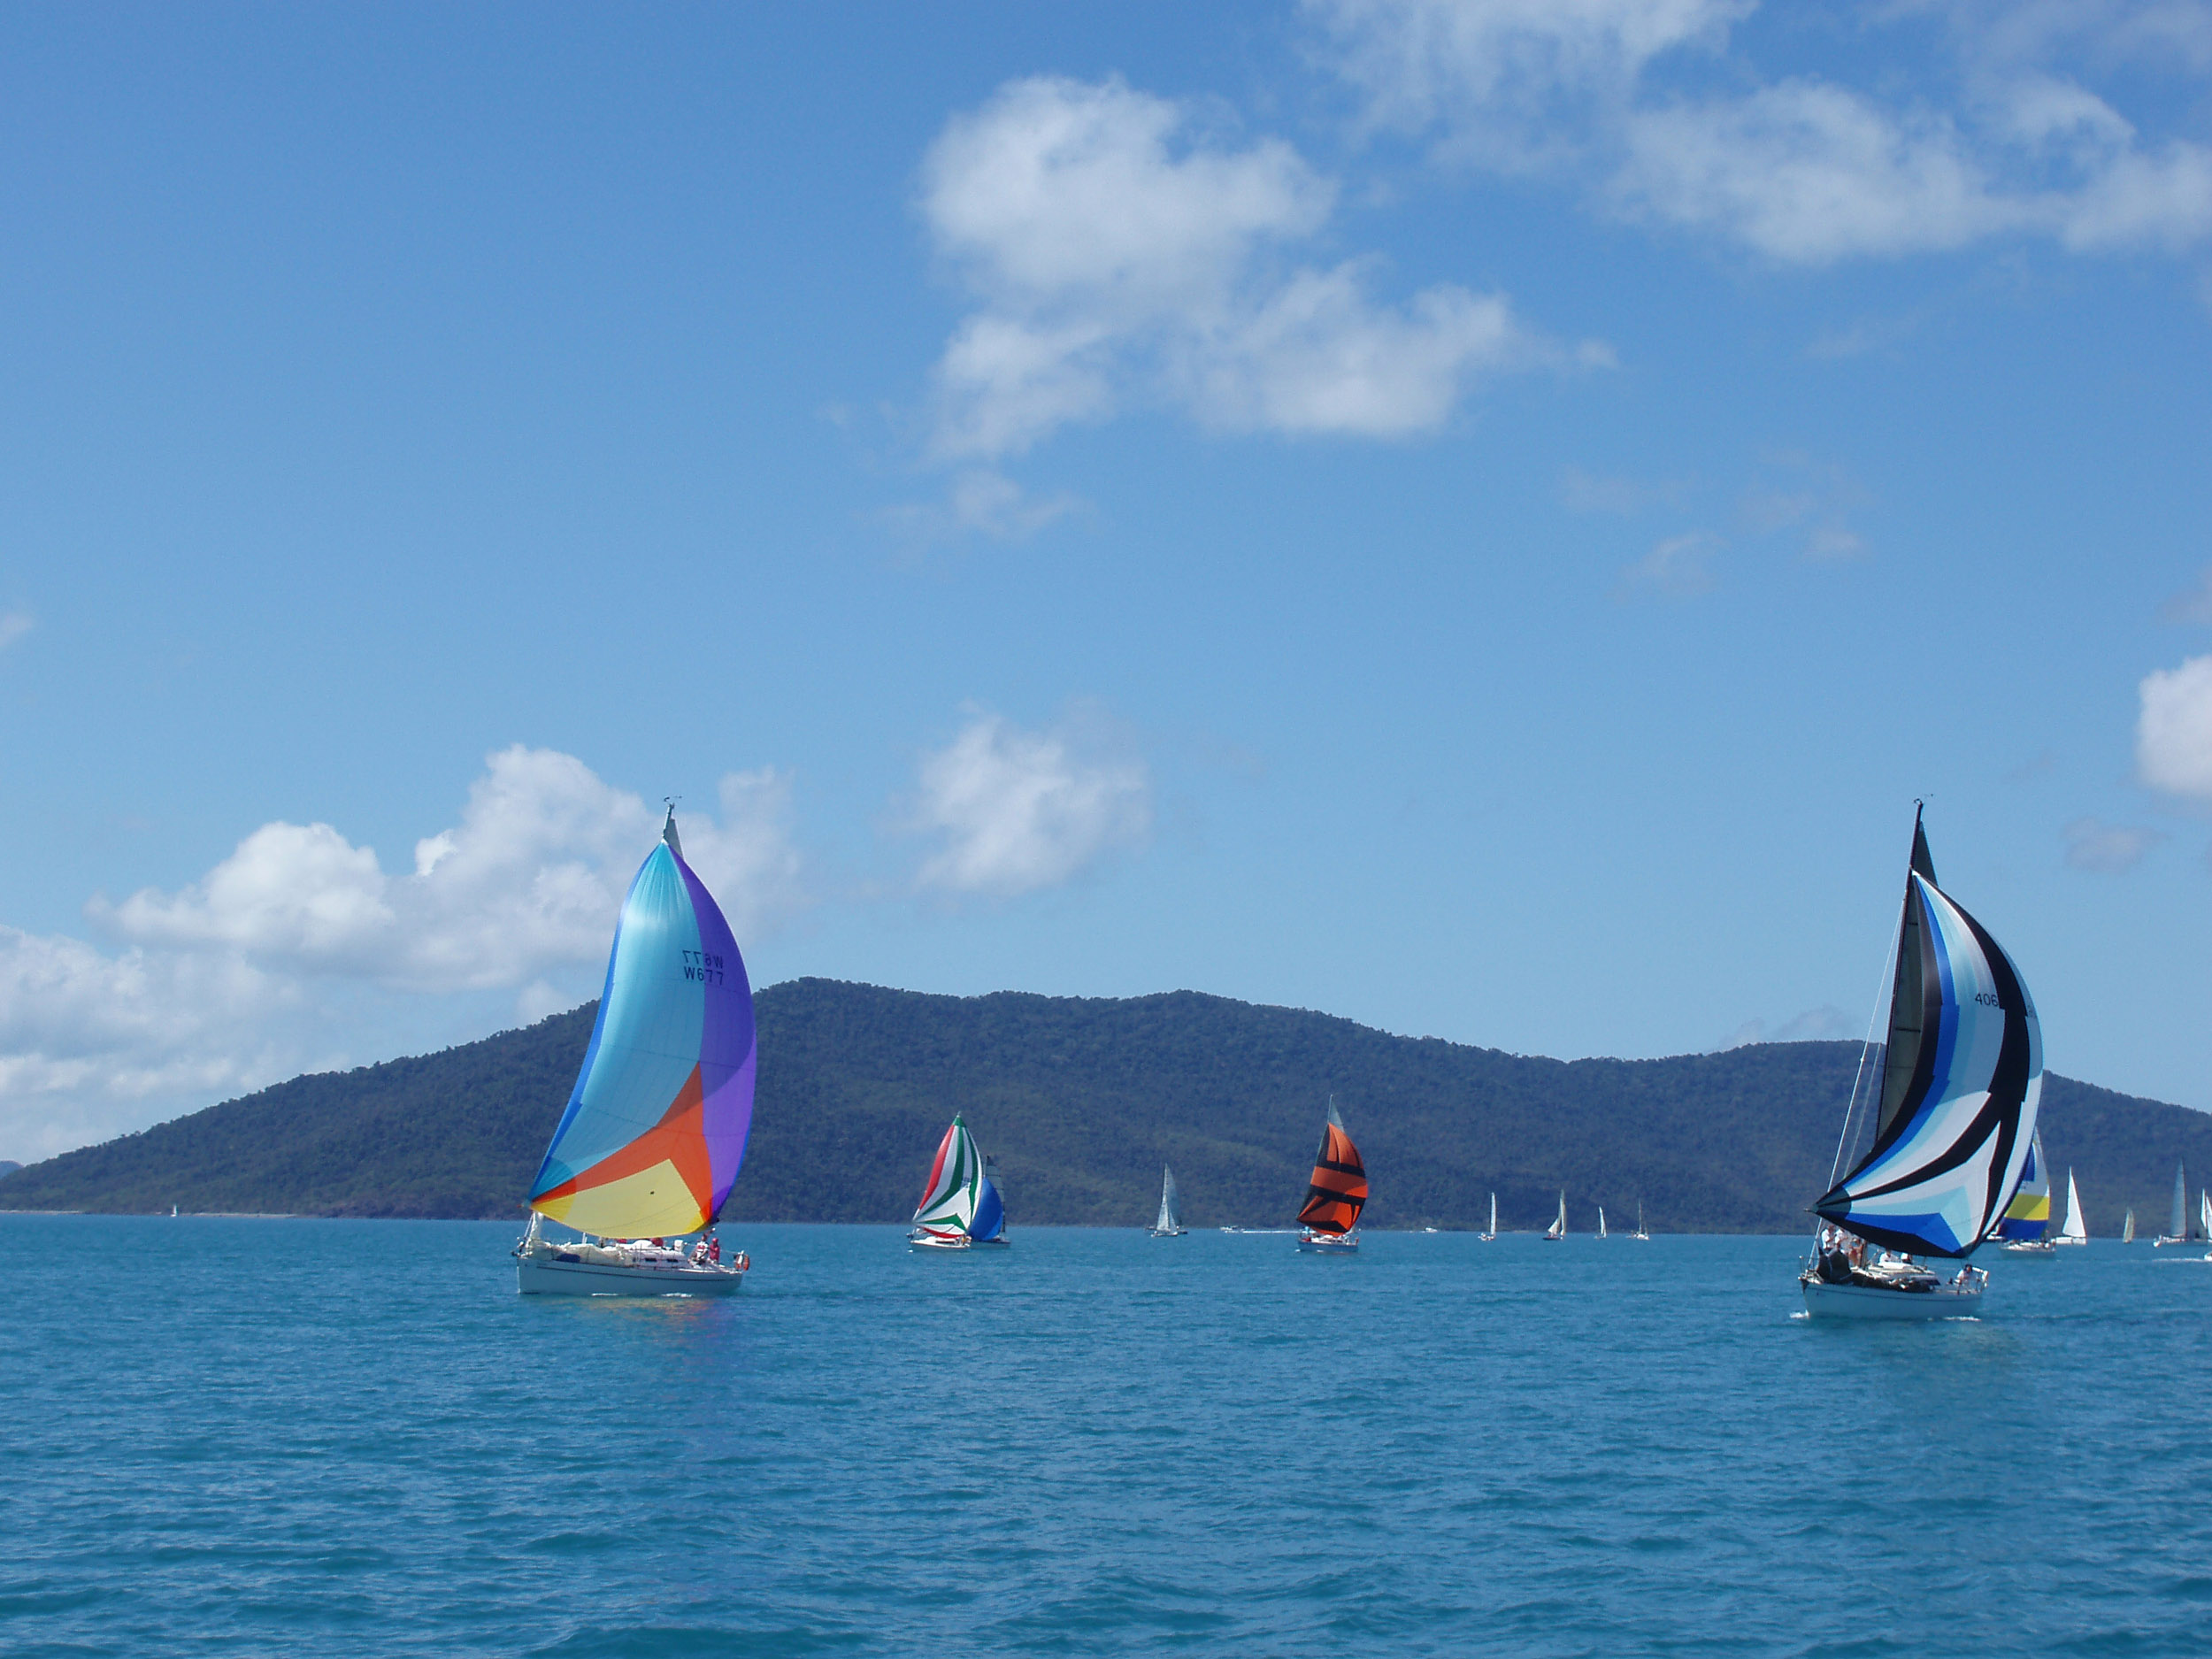 a division of boats sailing in the airle beach race week series